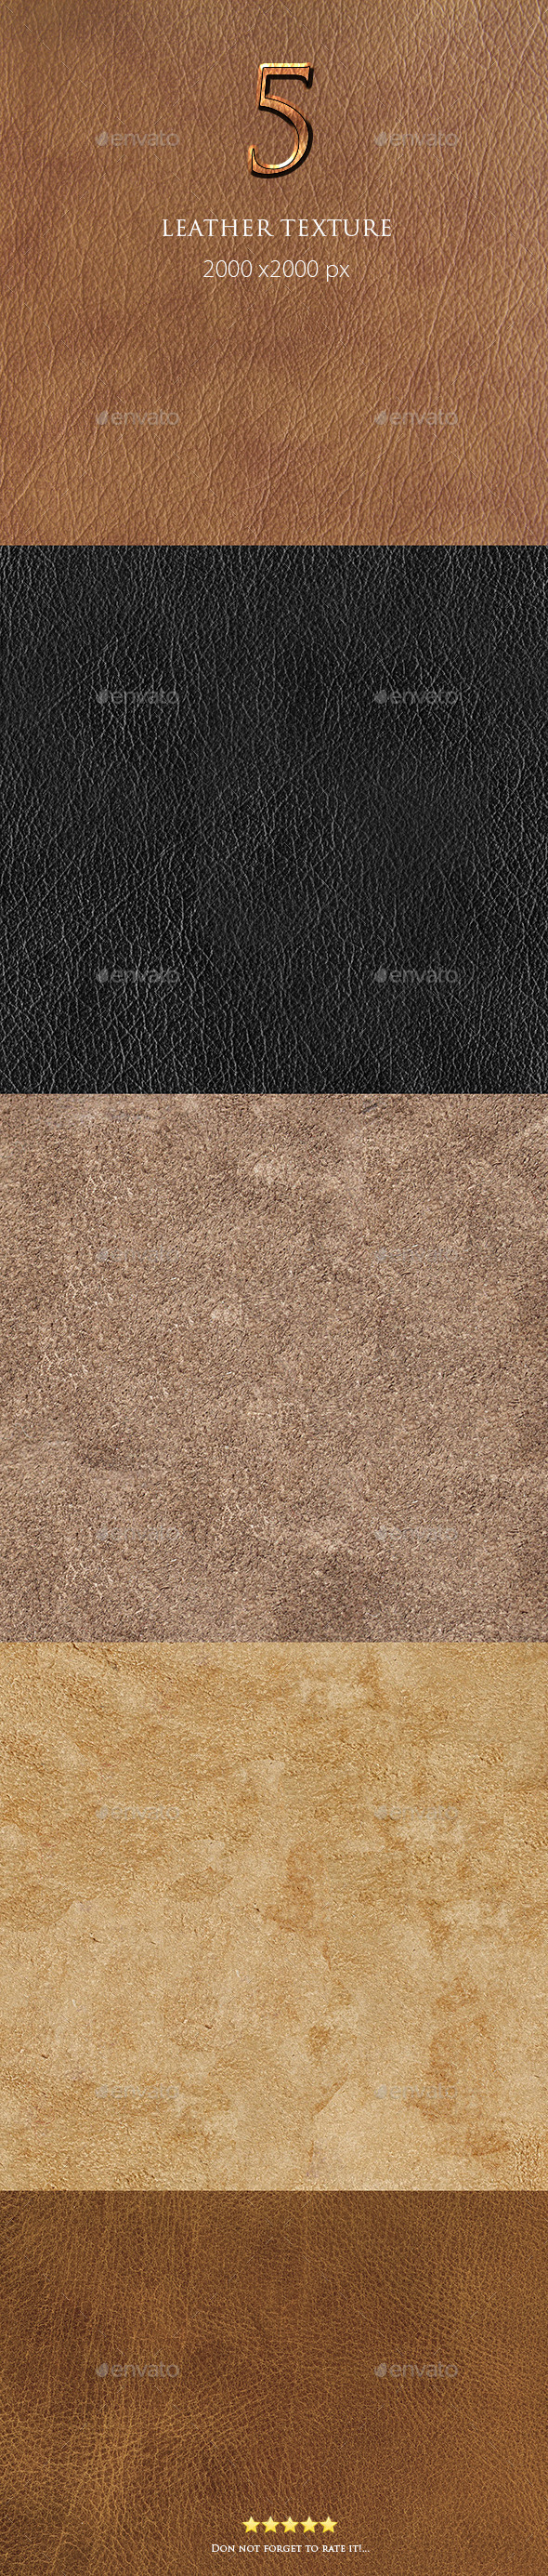 5 Leather Texture - Textures